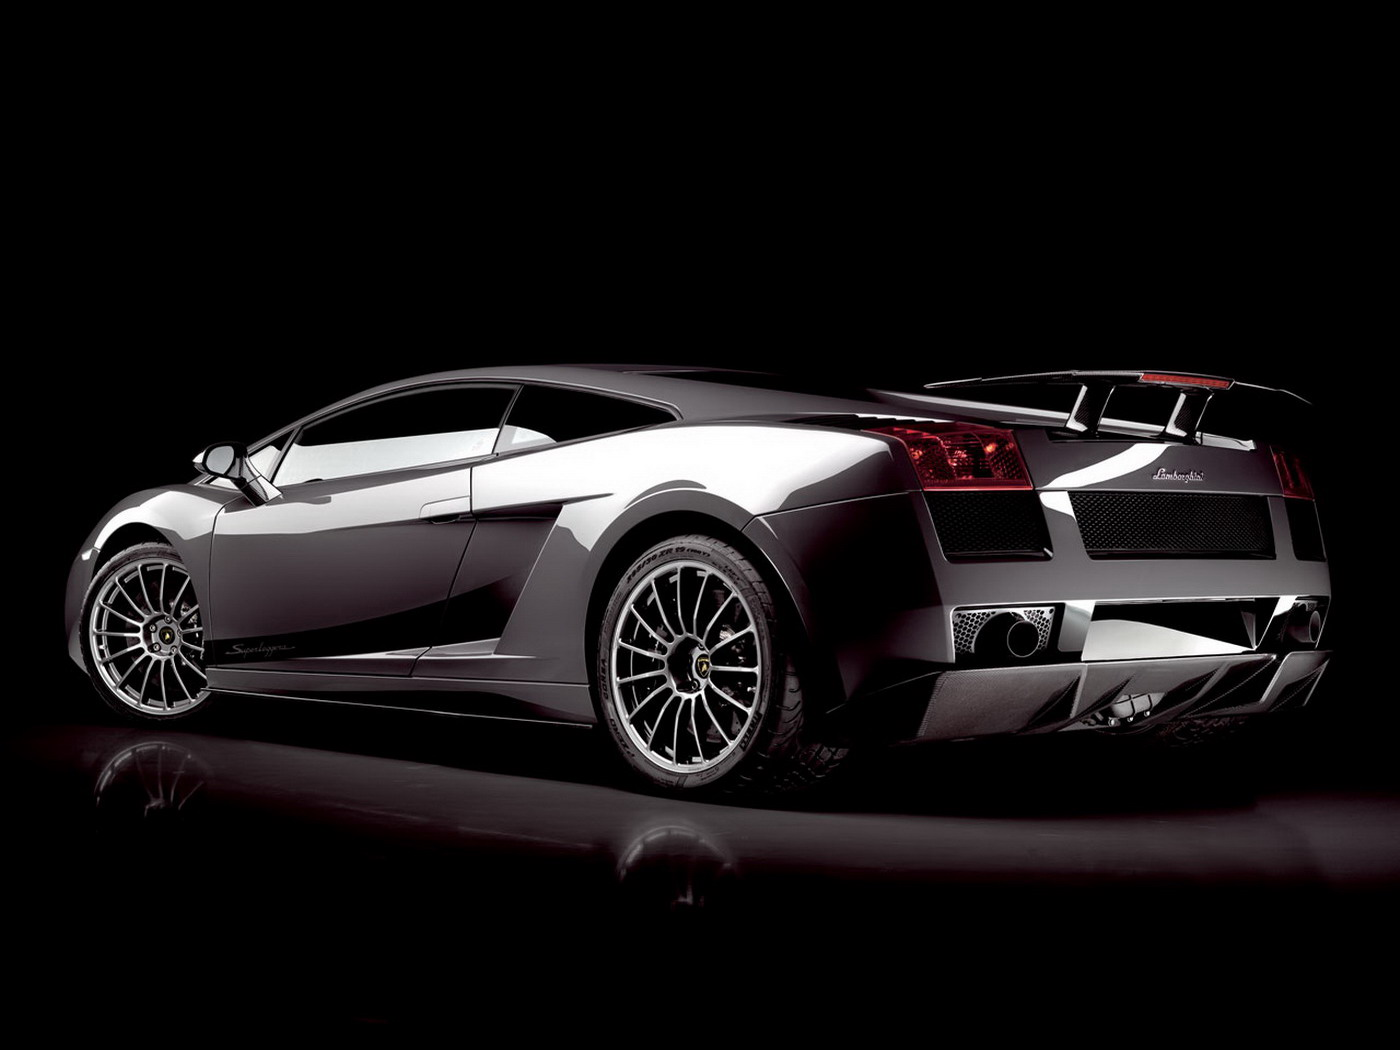 car wallpapers hd HD Cool Cars Wallpapers 1400x1050